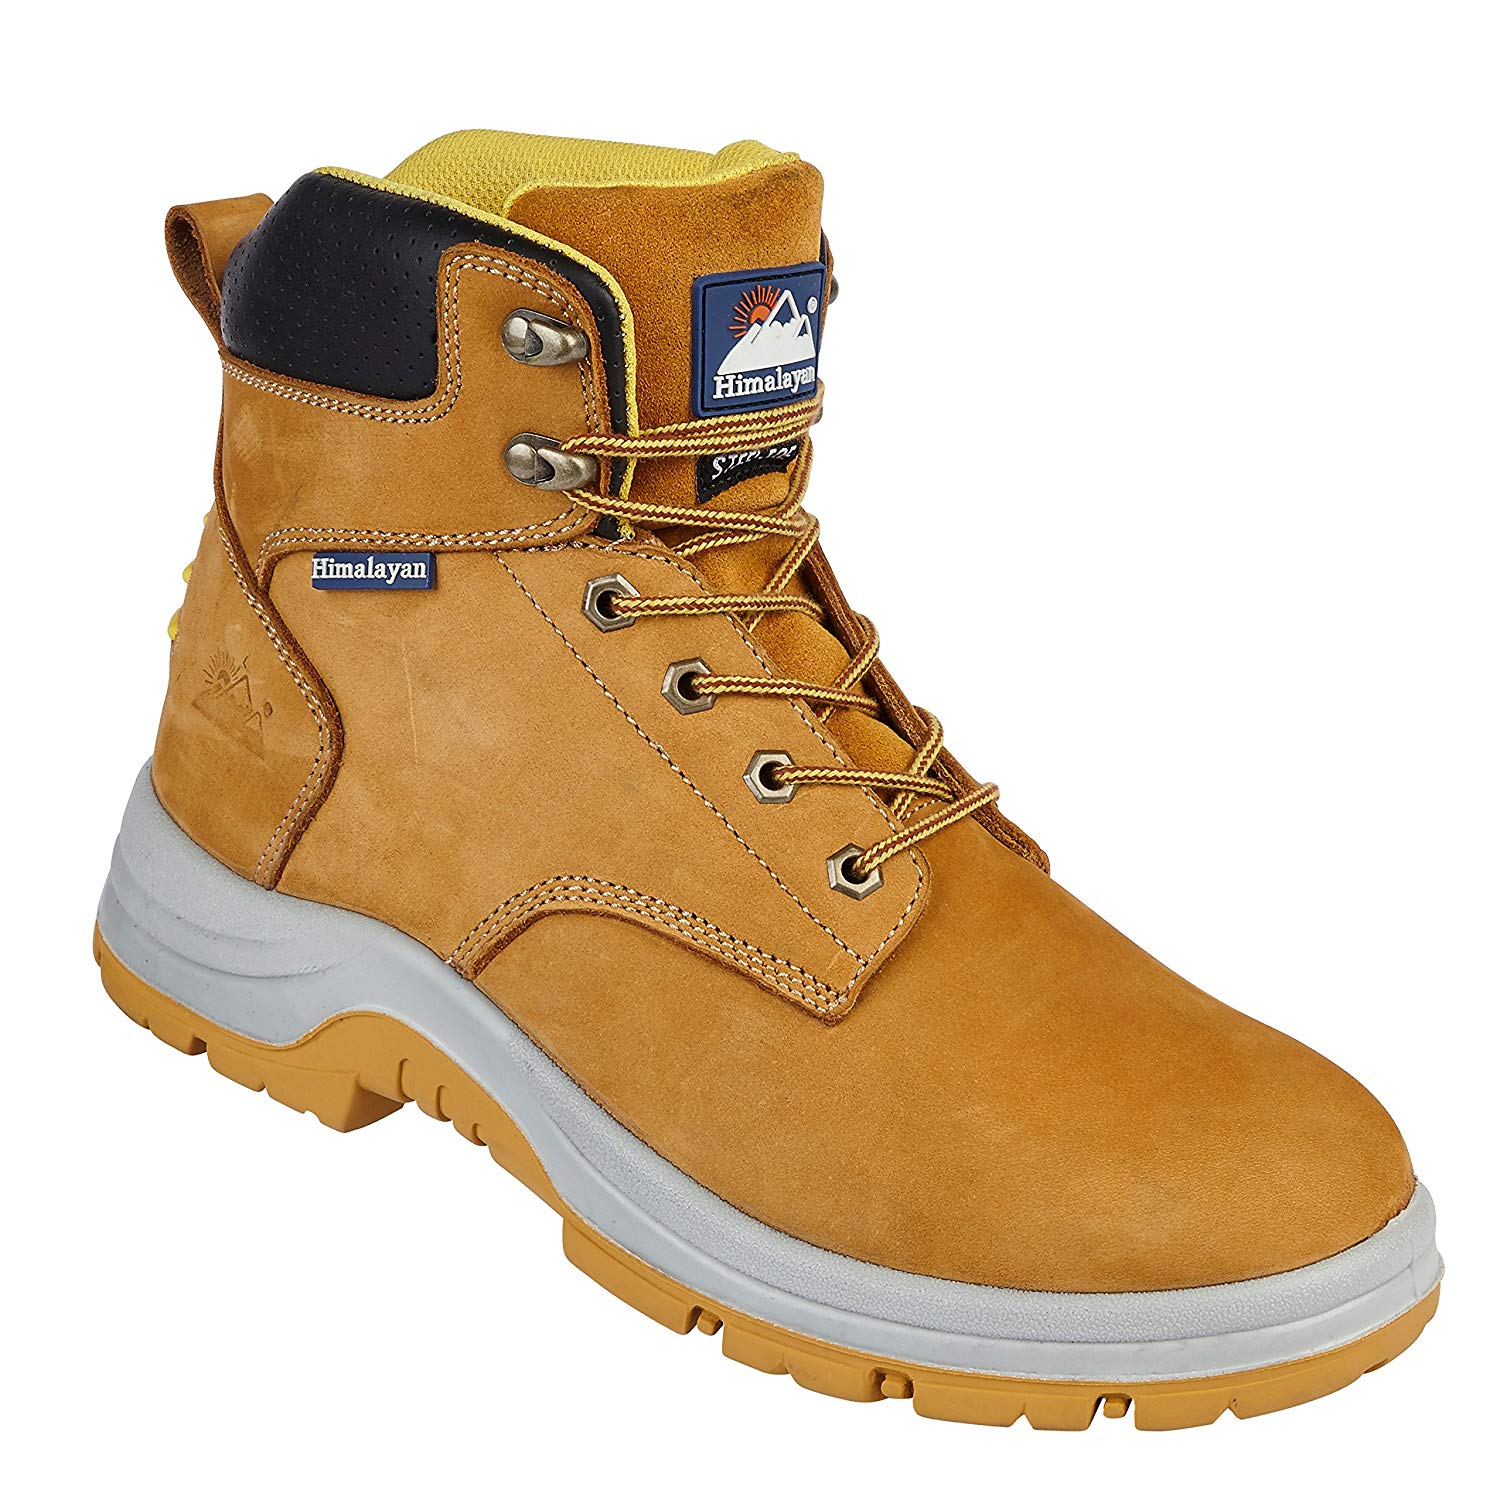 1c4d0c60caa Cheap Himalayan Safety Boots, find Himalayan Safety Boots deals on ...